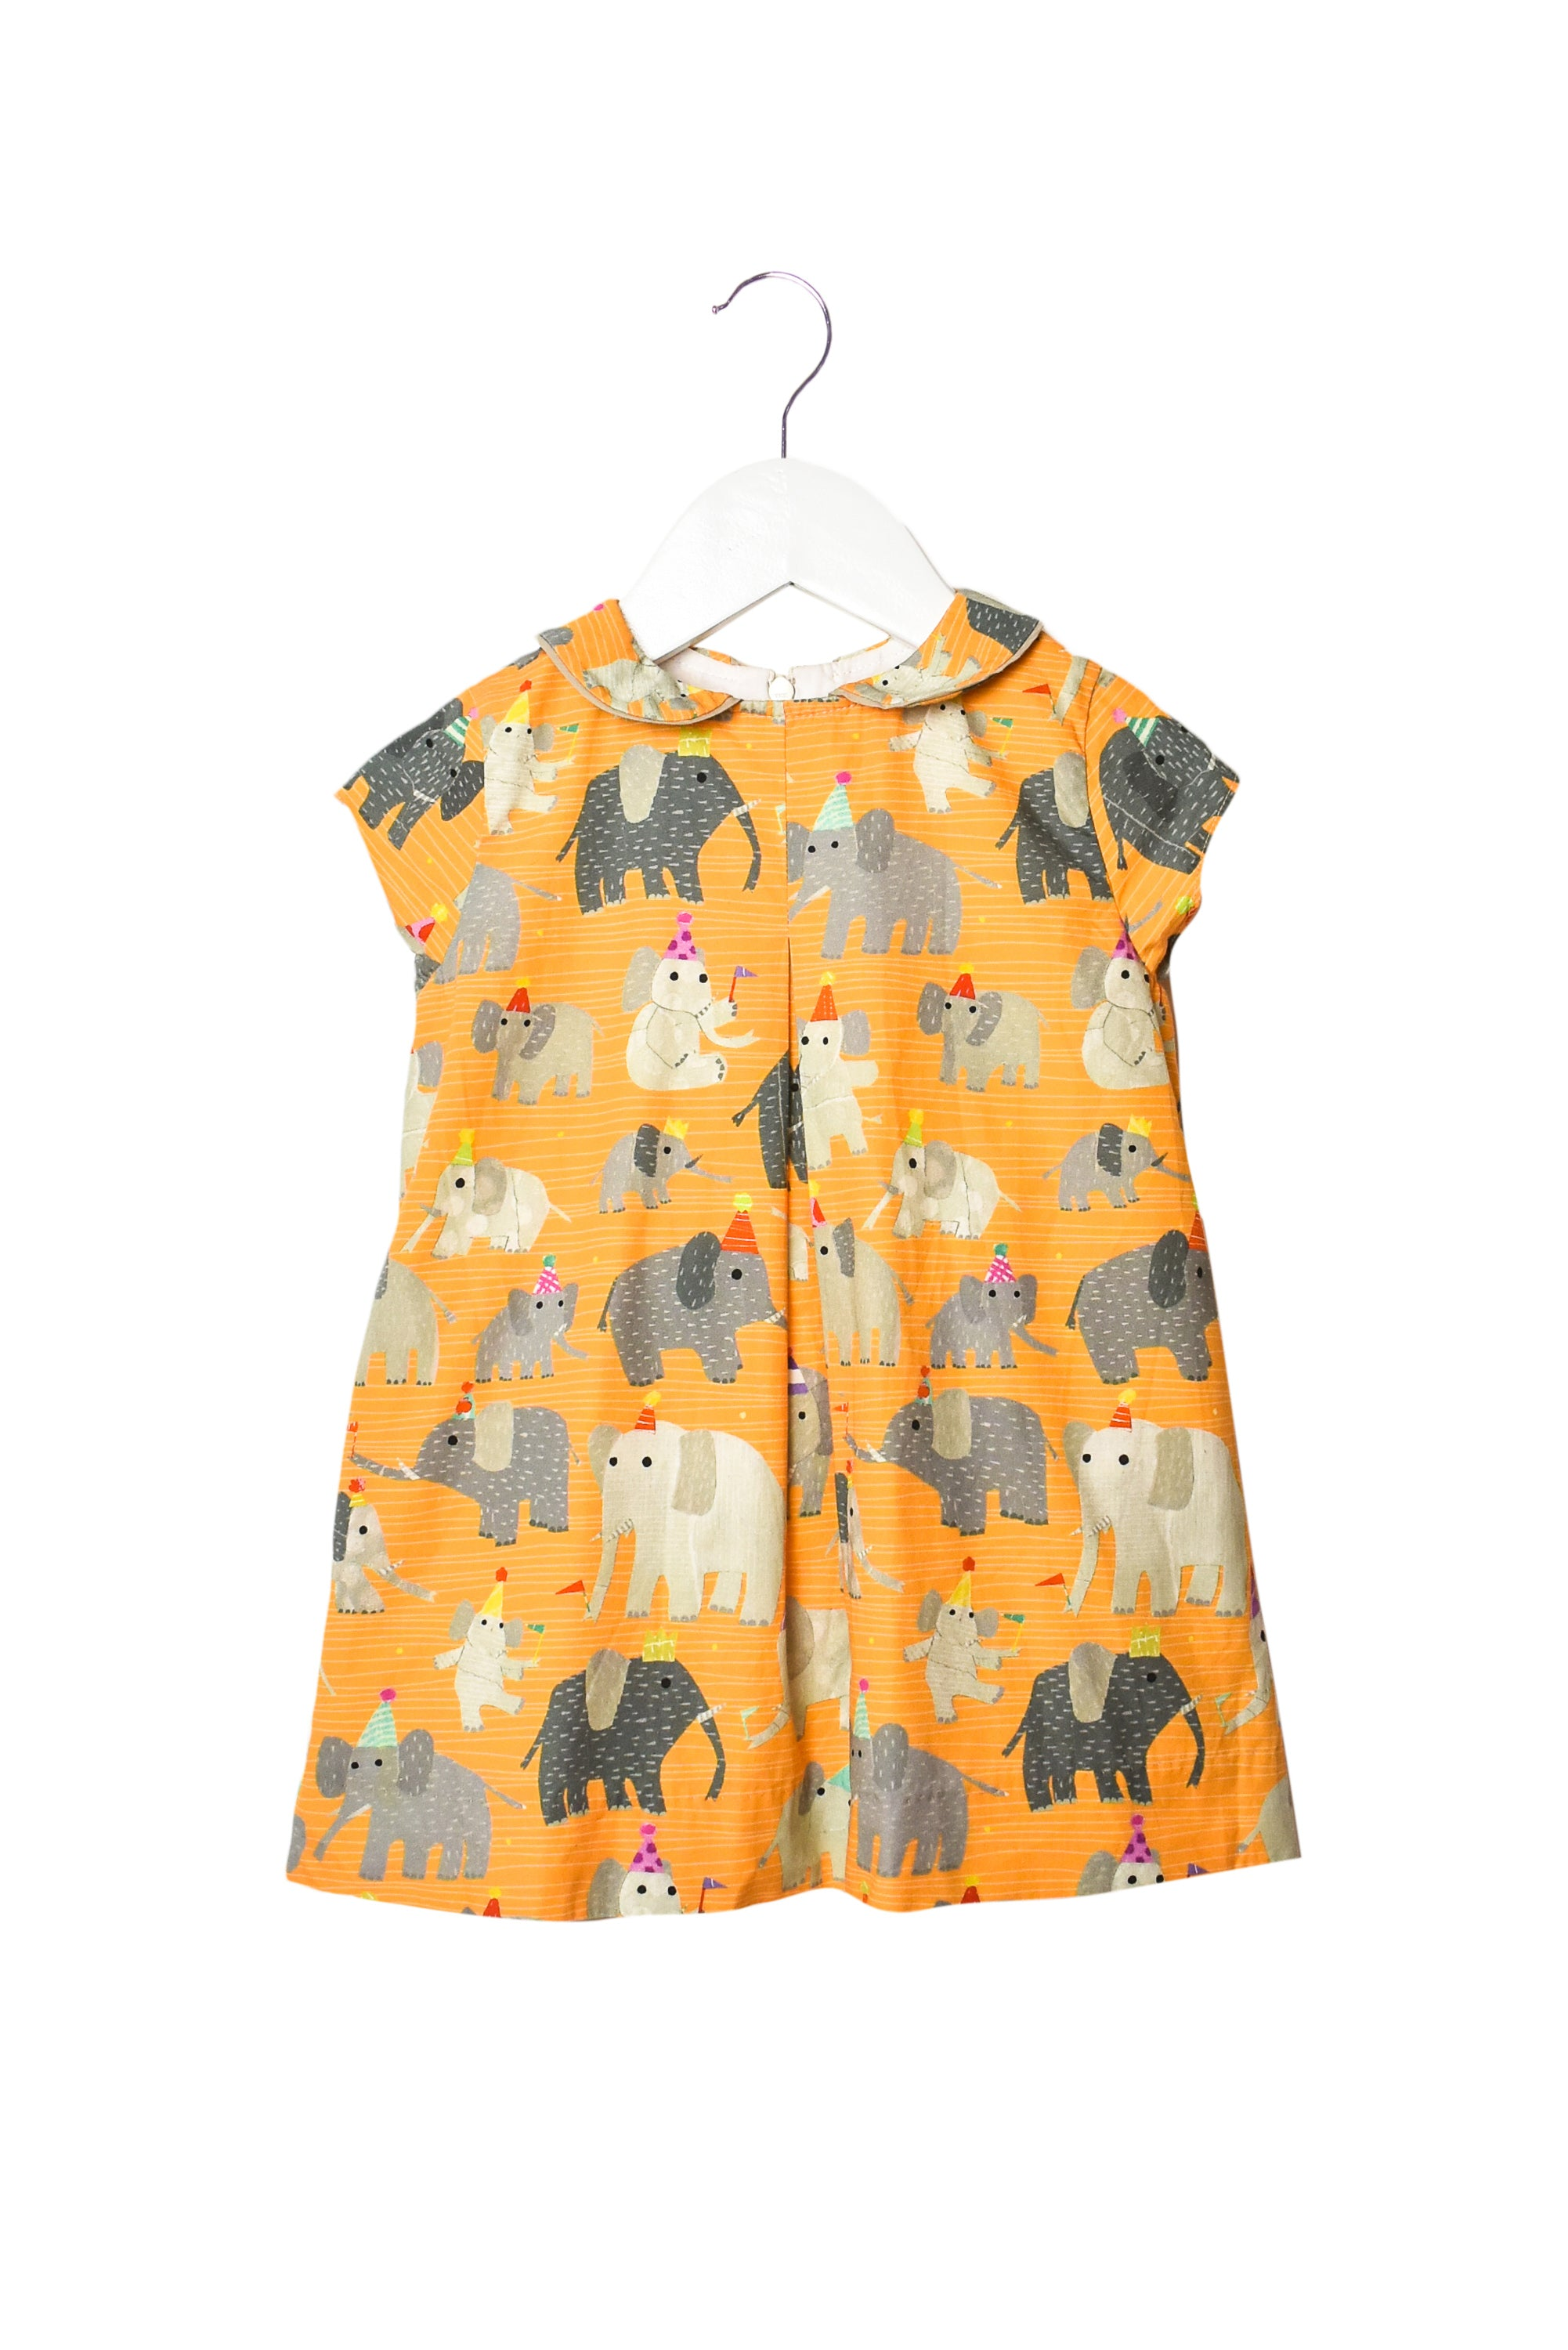 10008535 Jim Thompson Baby~ Dress 2T at Retykle